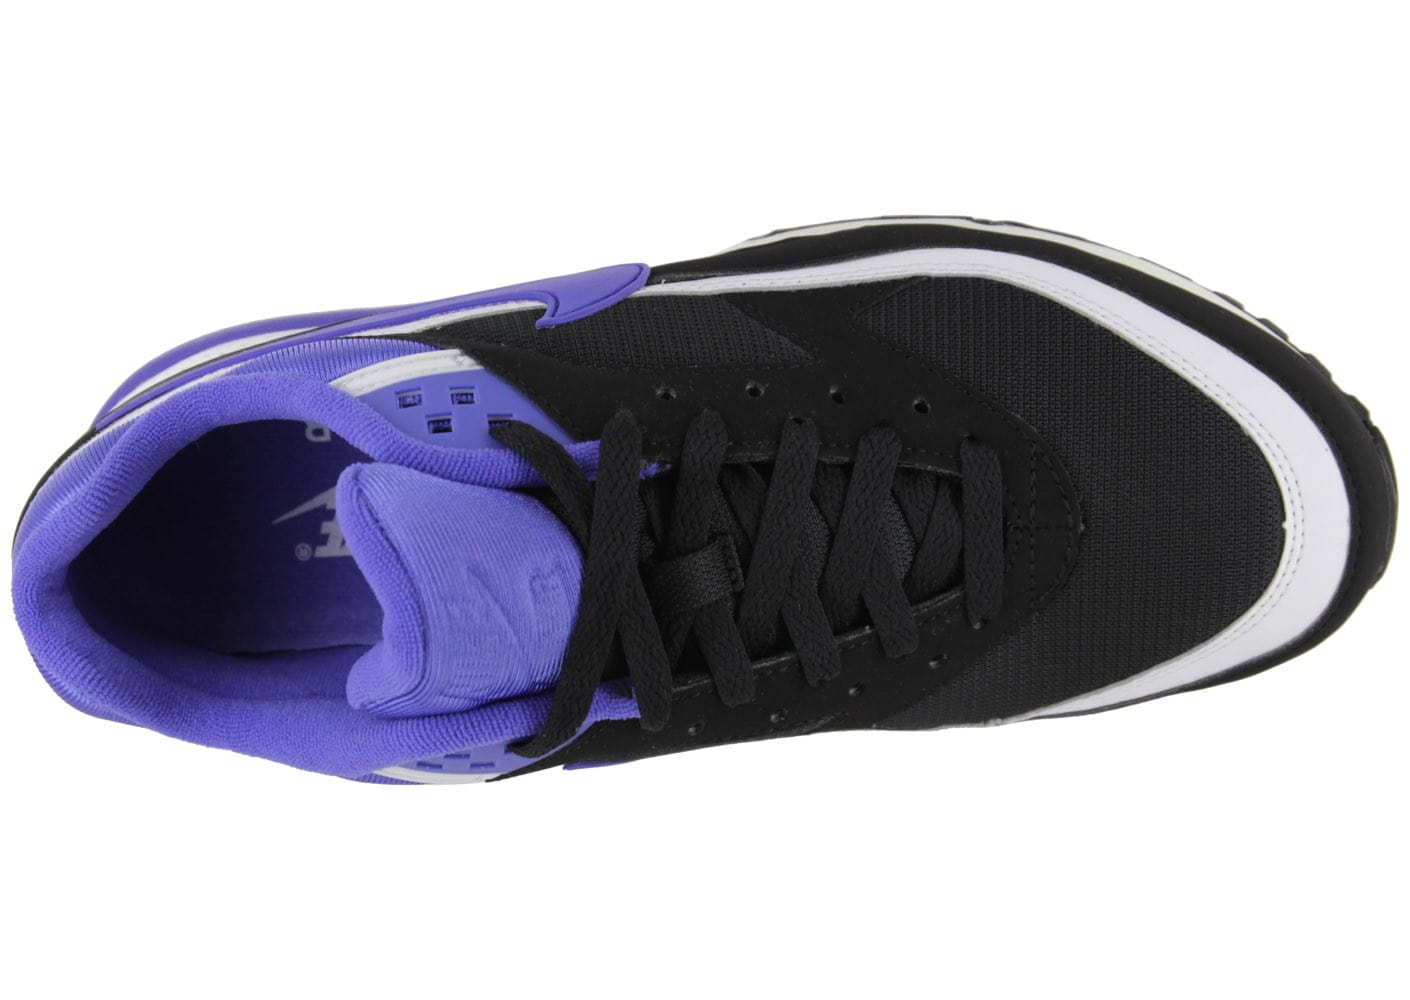 wholesale dealer 11efa 6a171 ... Chaussures Nike Air Max Bw Classic Persian Violet vue dessus